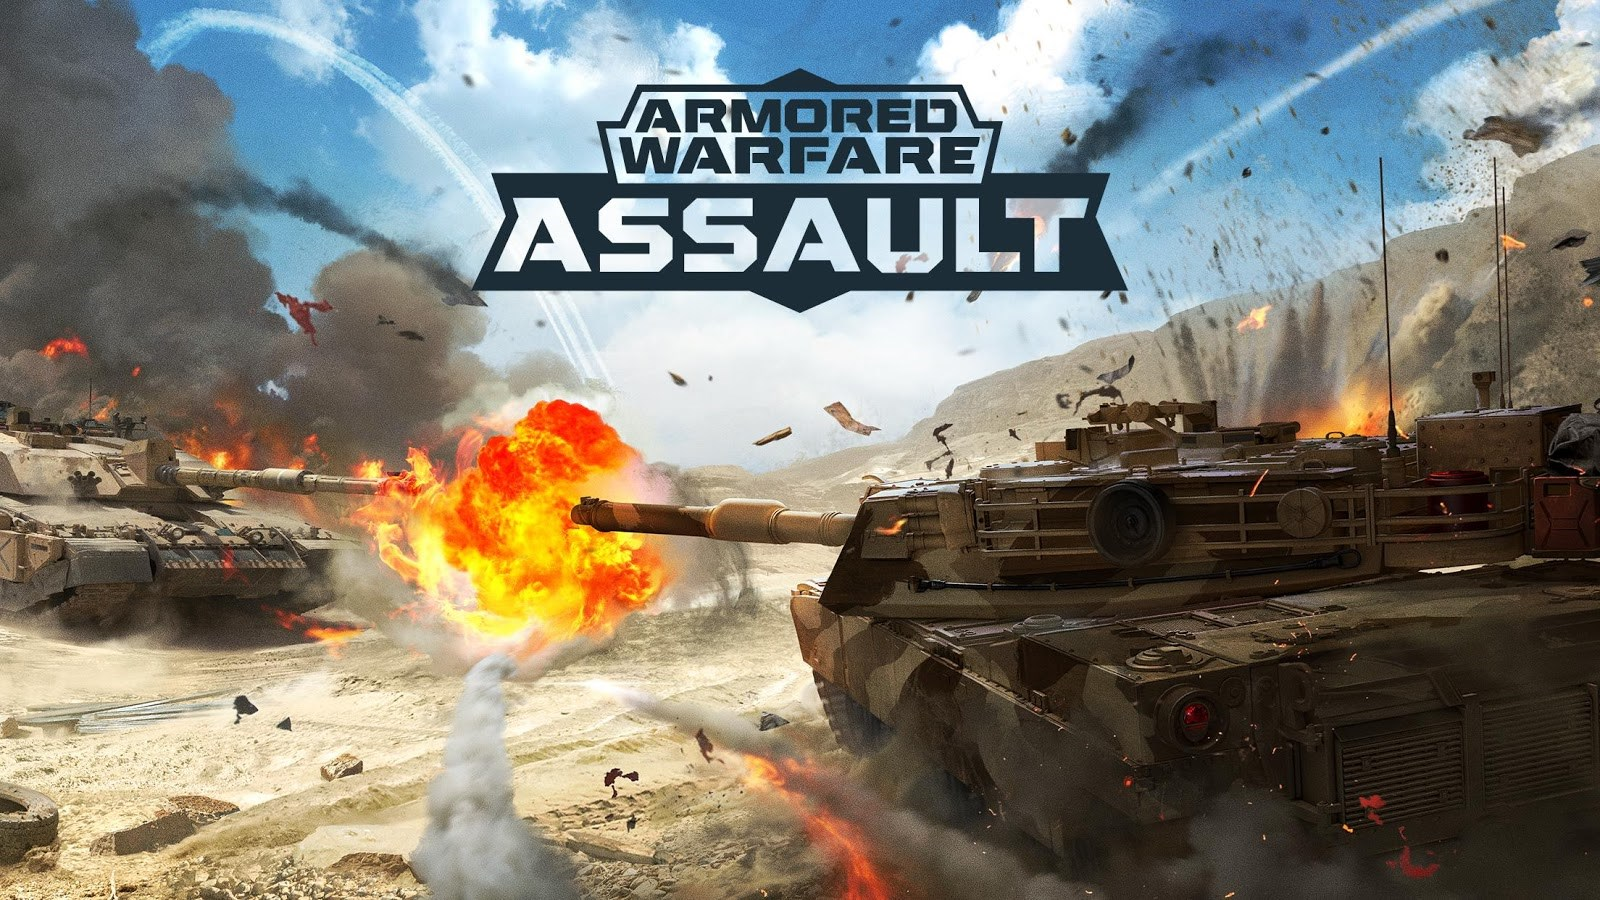 Armored Warfare: Assault - Imagem 1 do software